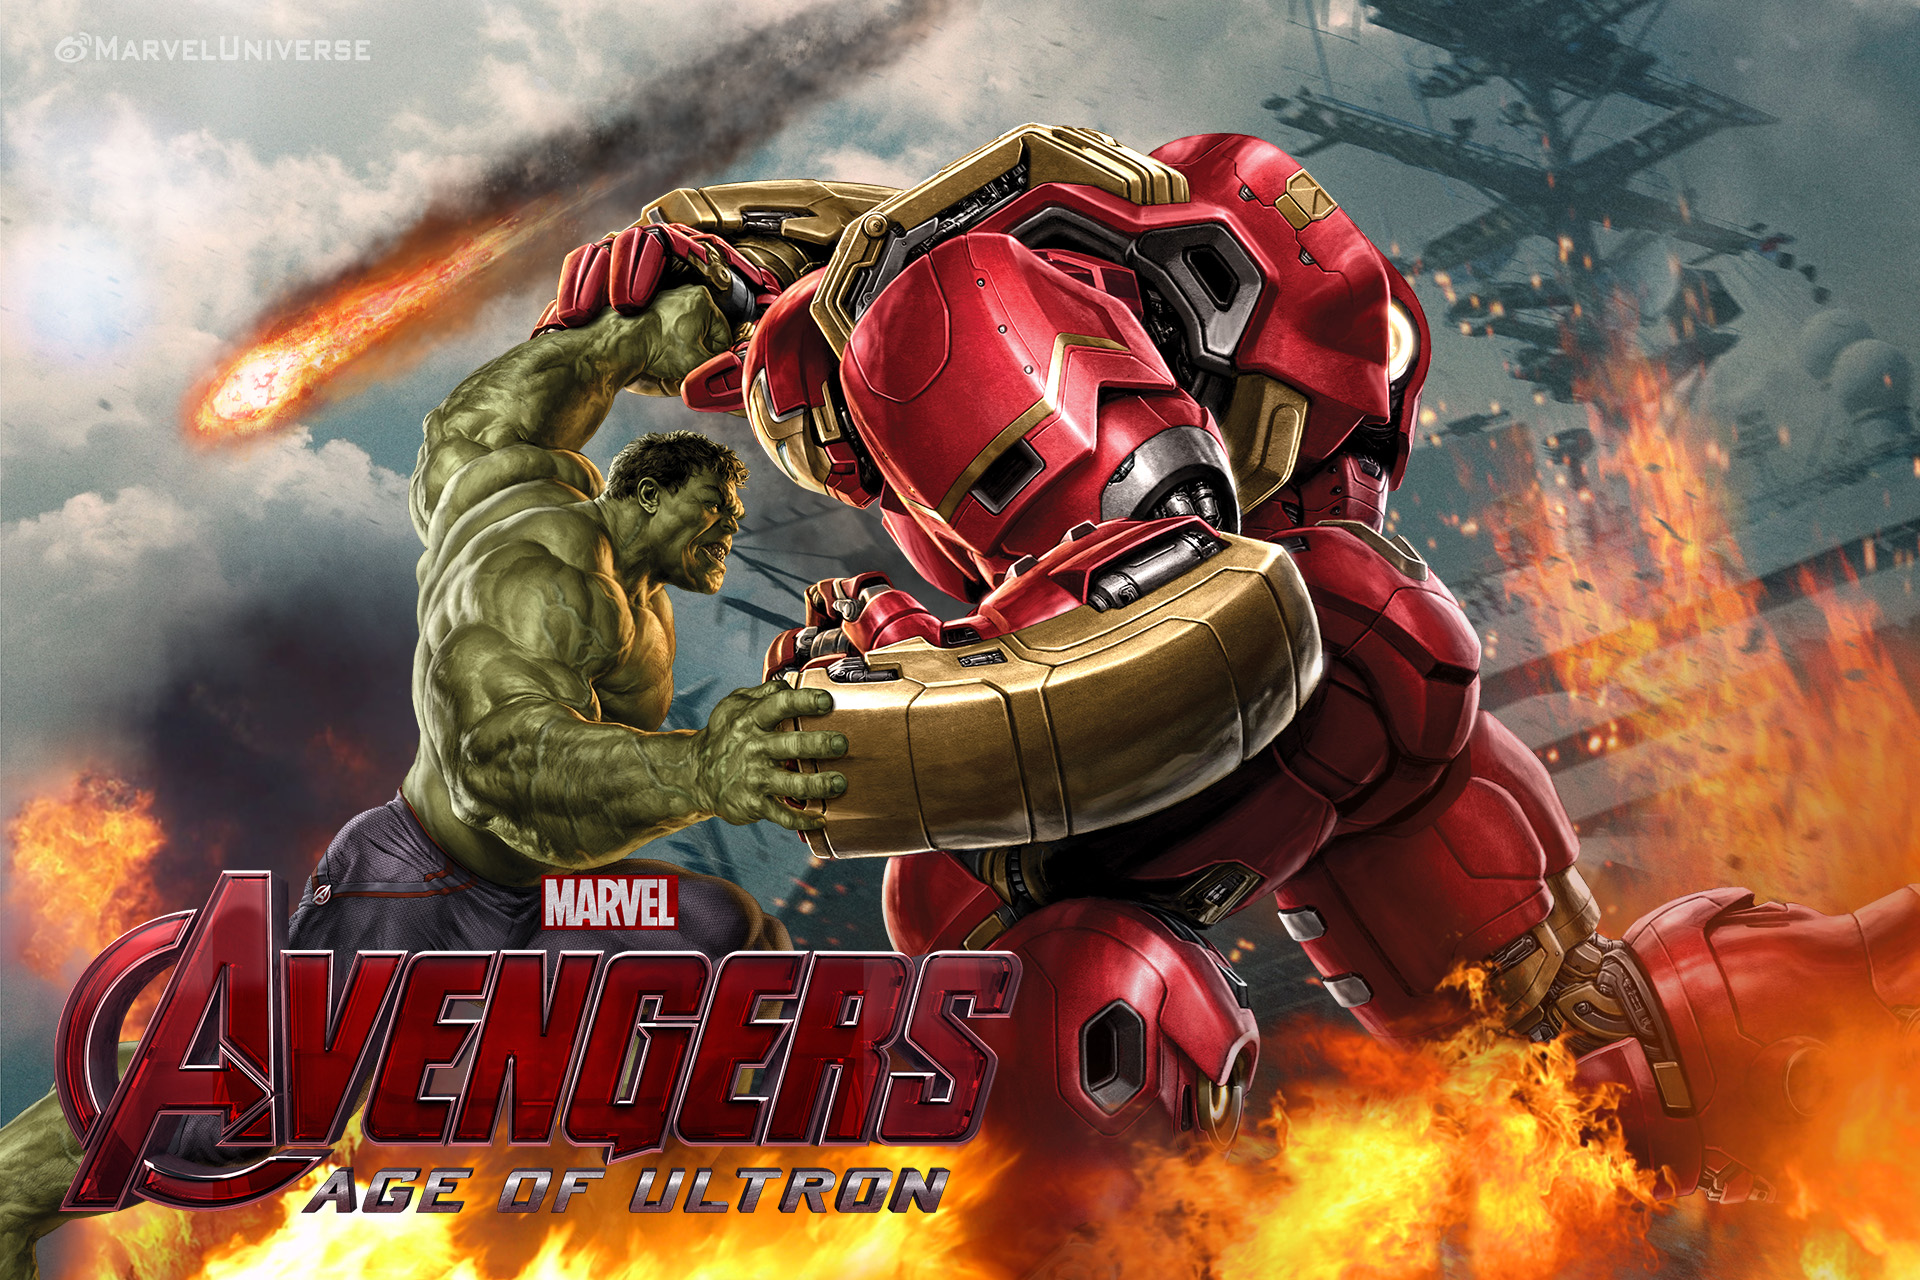 The Avengers Age of Ultron Hulkbuster Avengers Age of Ultron